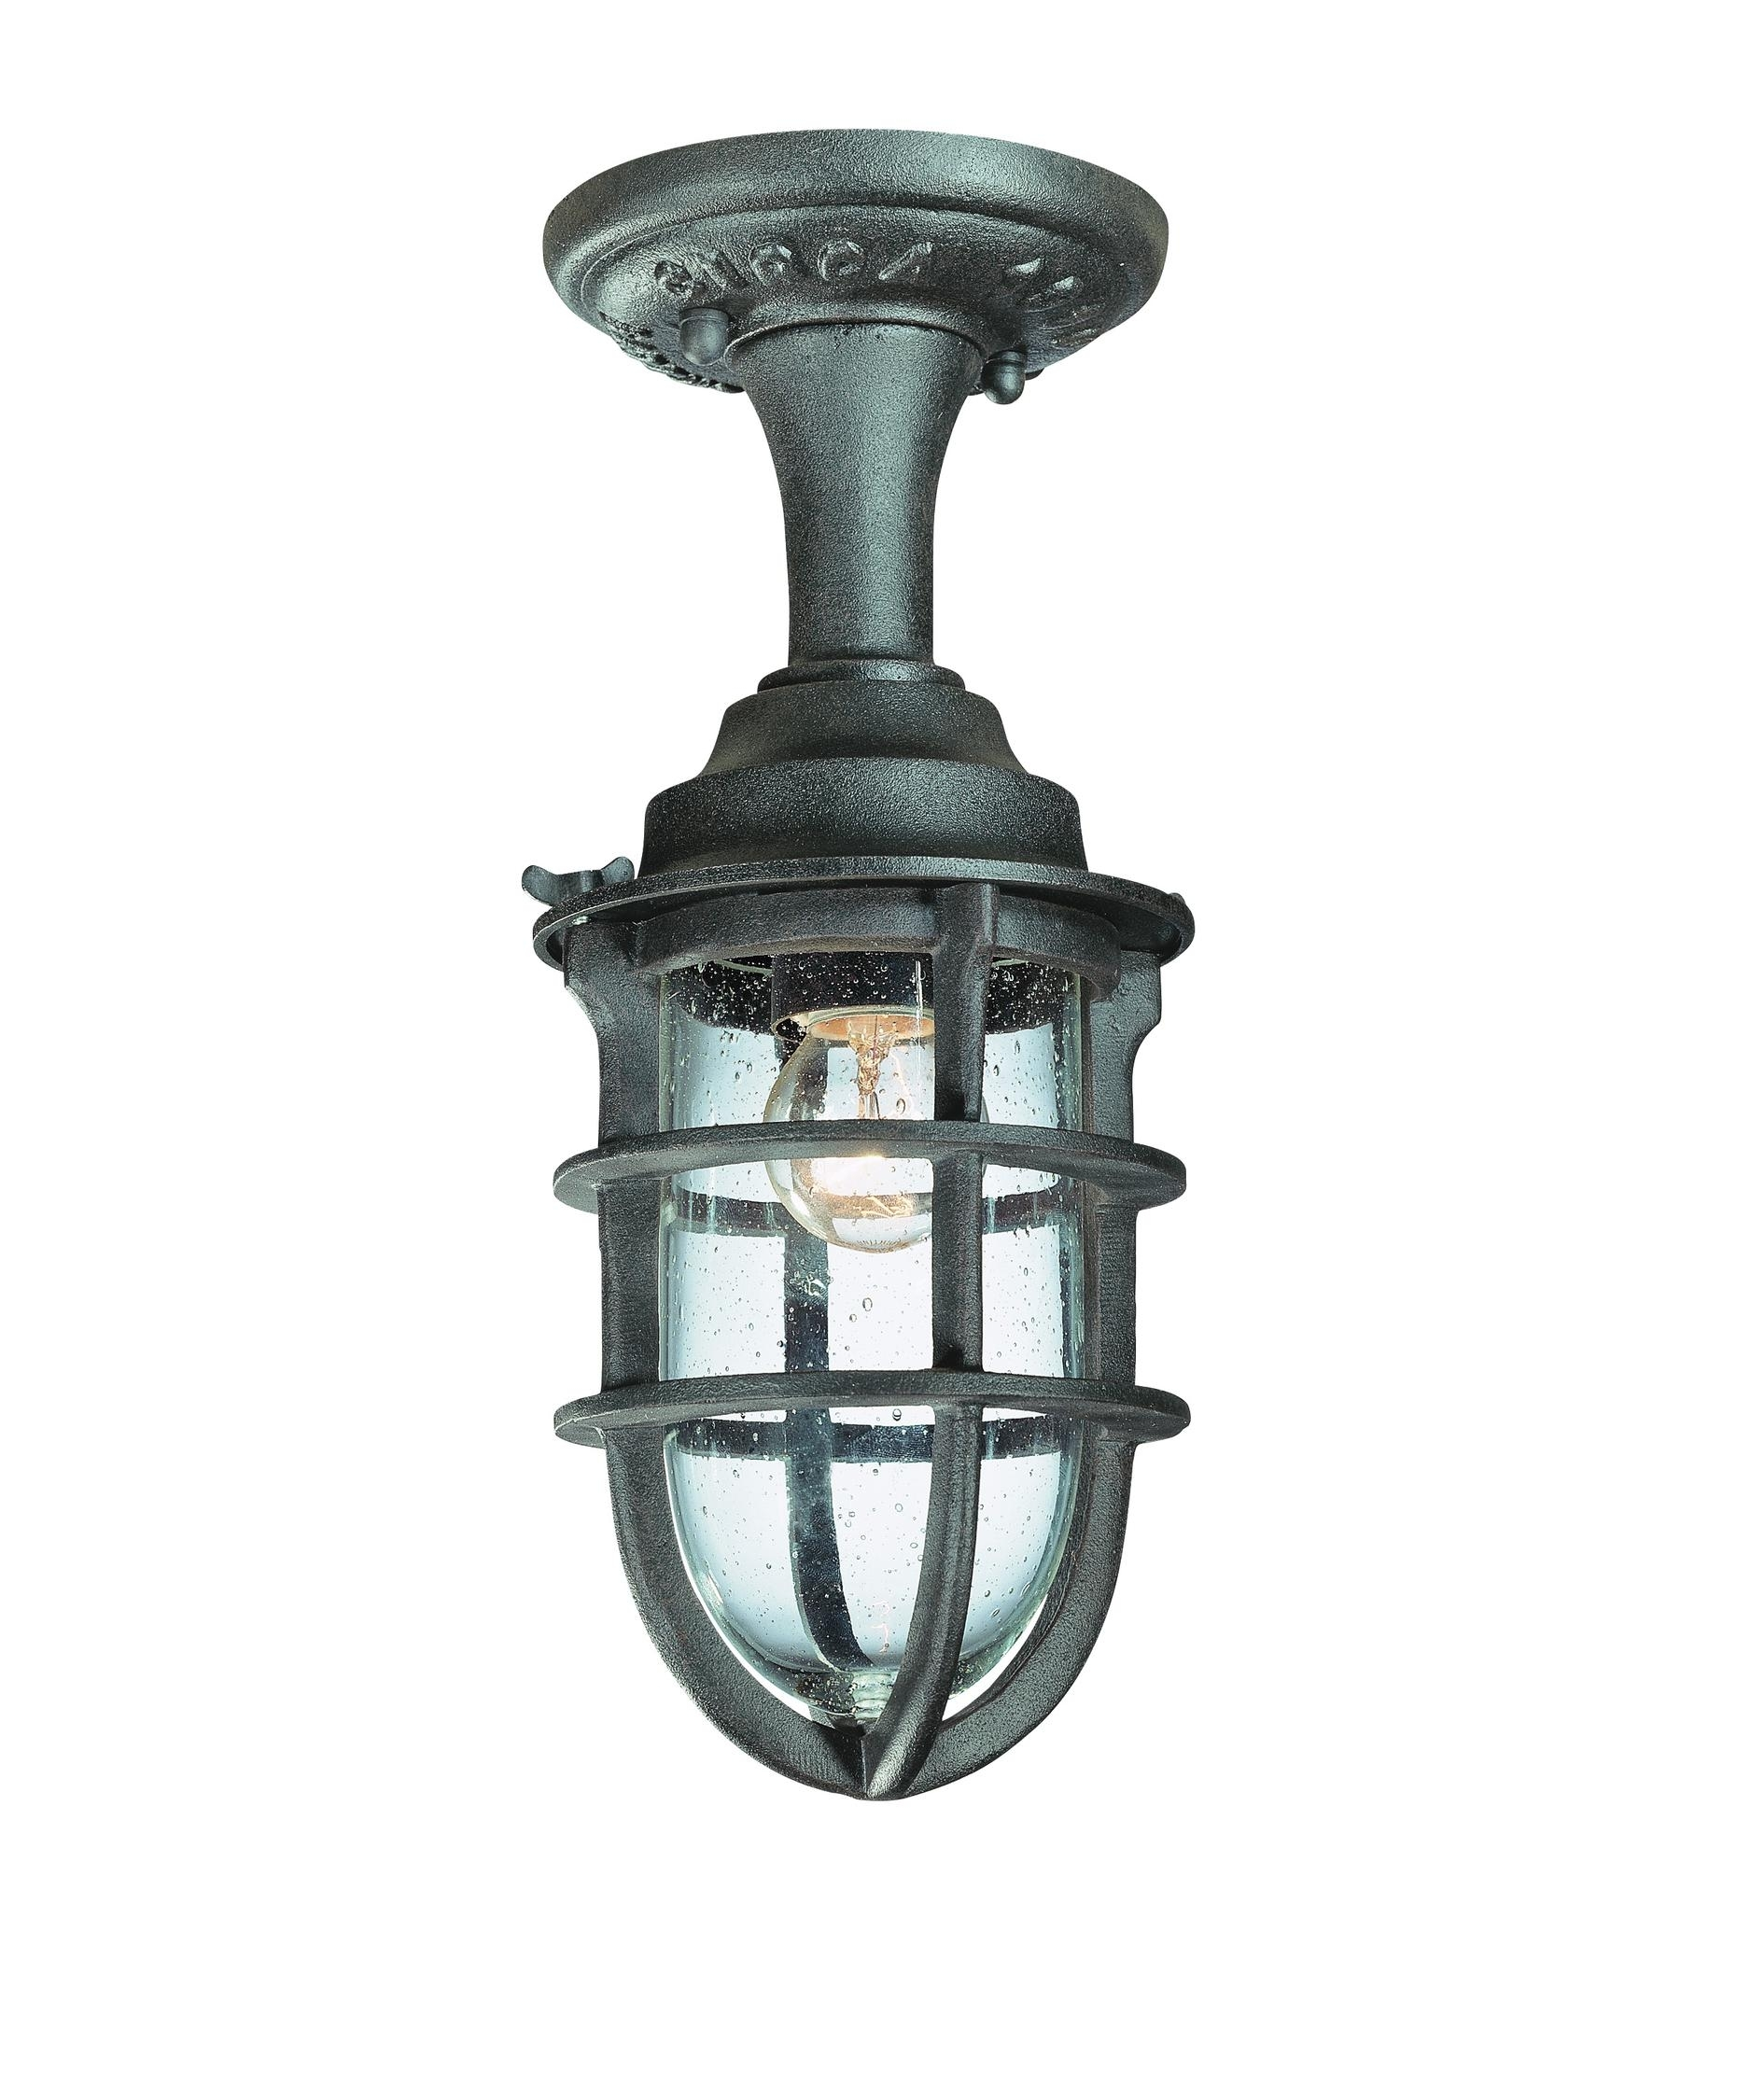 Troy Lighting C1863 Wilmington 6 Inch Wide 1 Light Outdoor Flush Pertaining To Outdoor Ceiling Nautical Lights (#15 of 15)